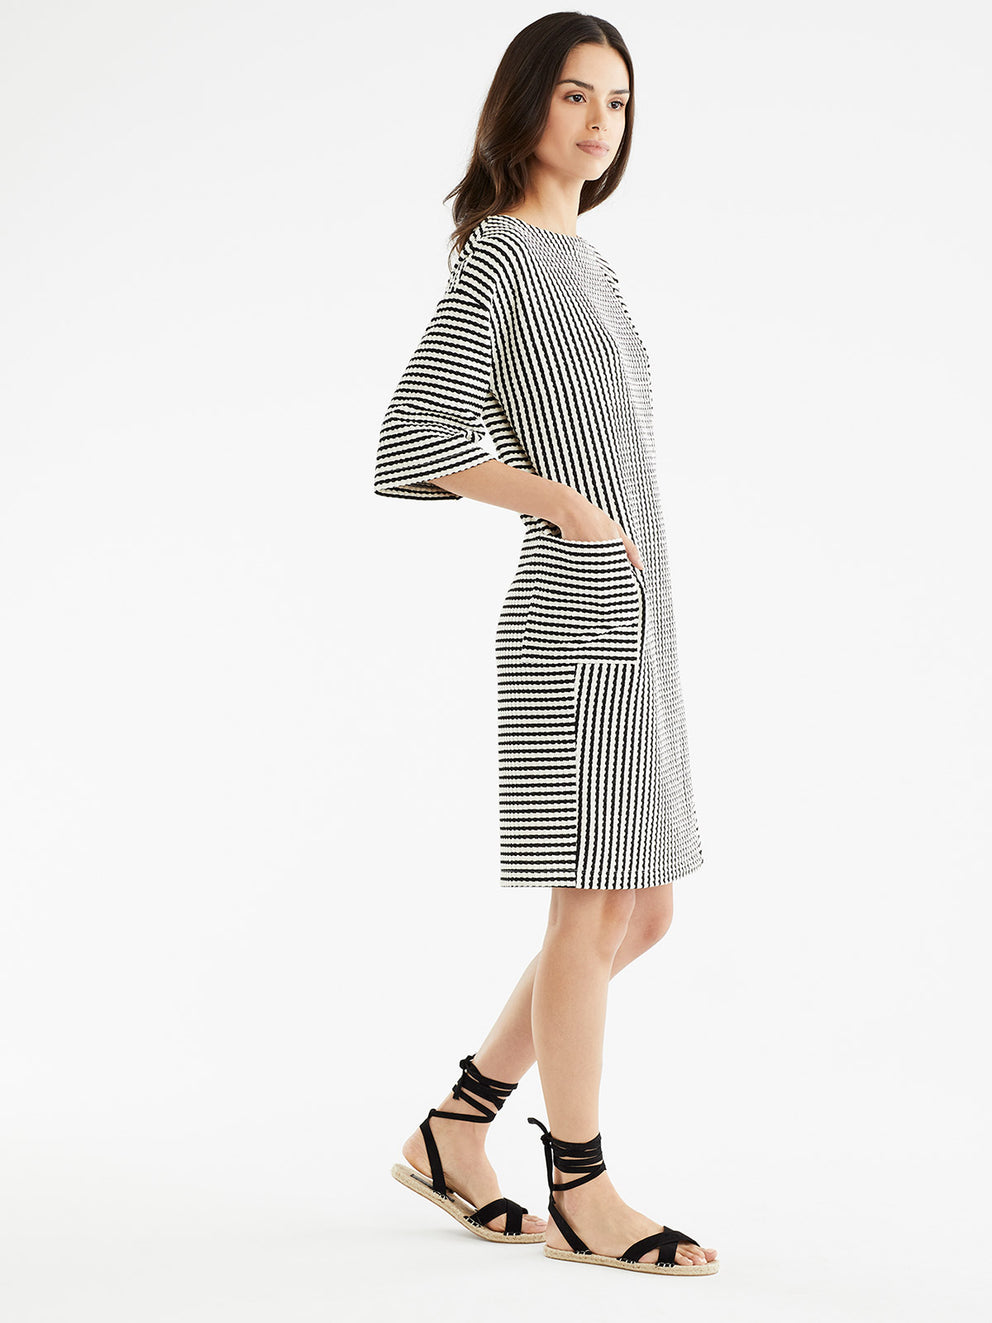 The Jones New York Textured Stripe Dress, Plus Size in color Black Cable Stripe - Image Position 2